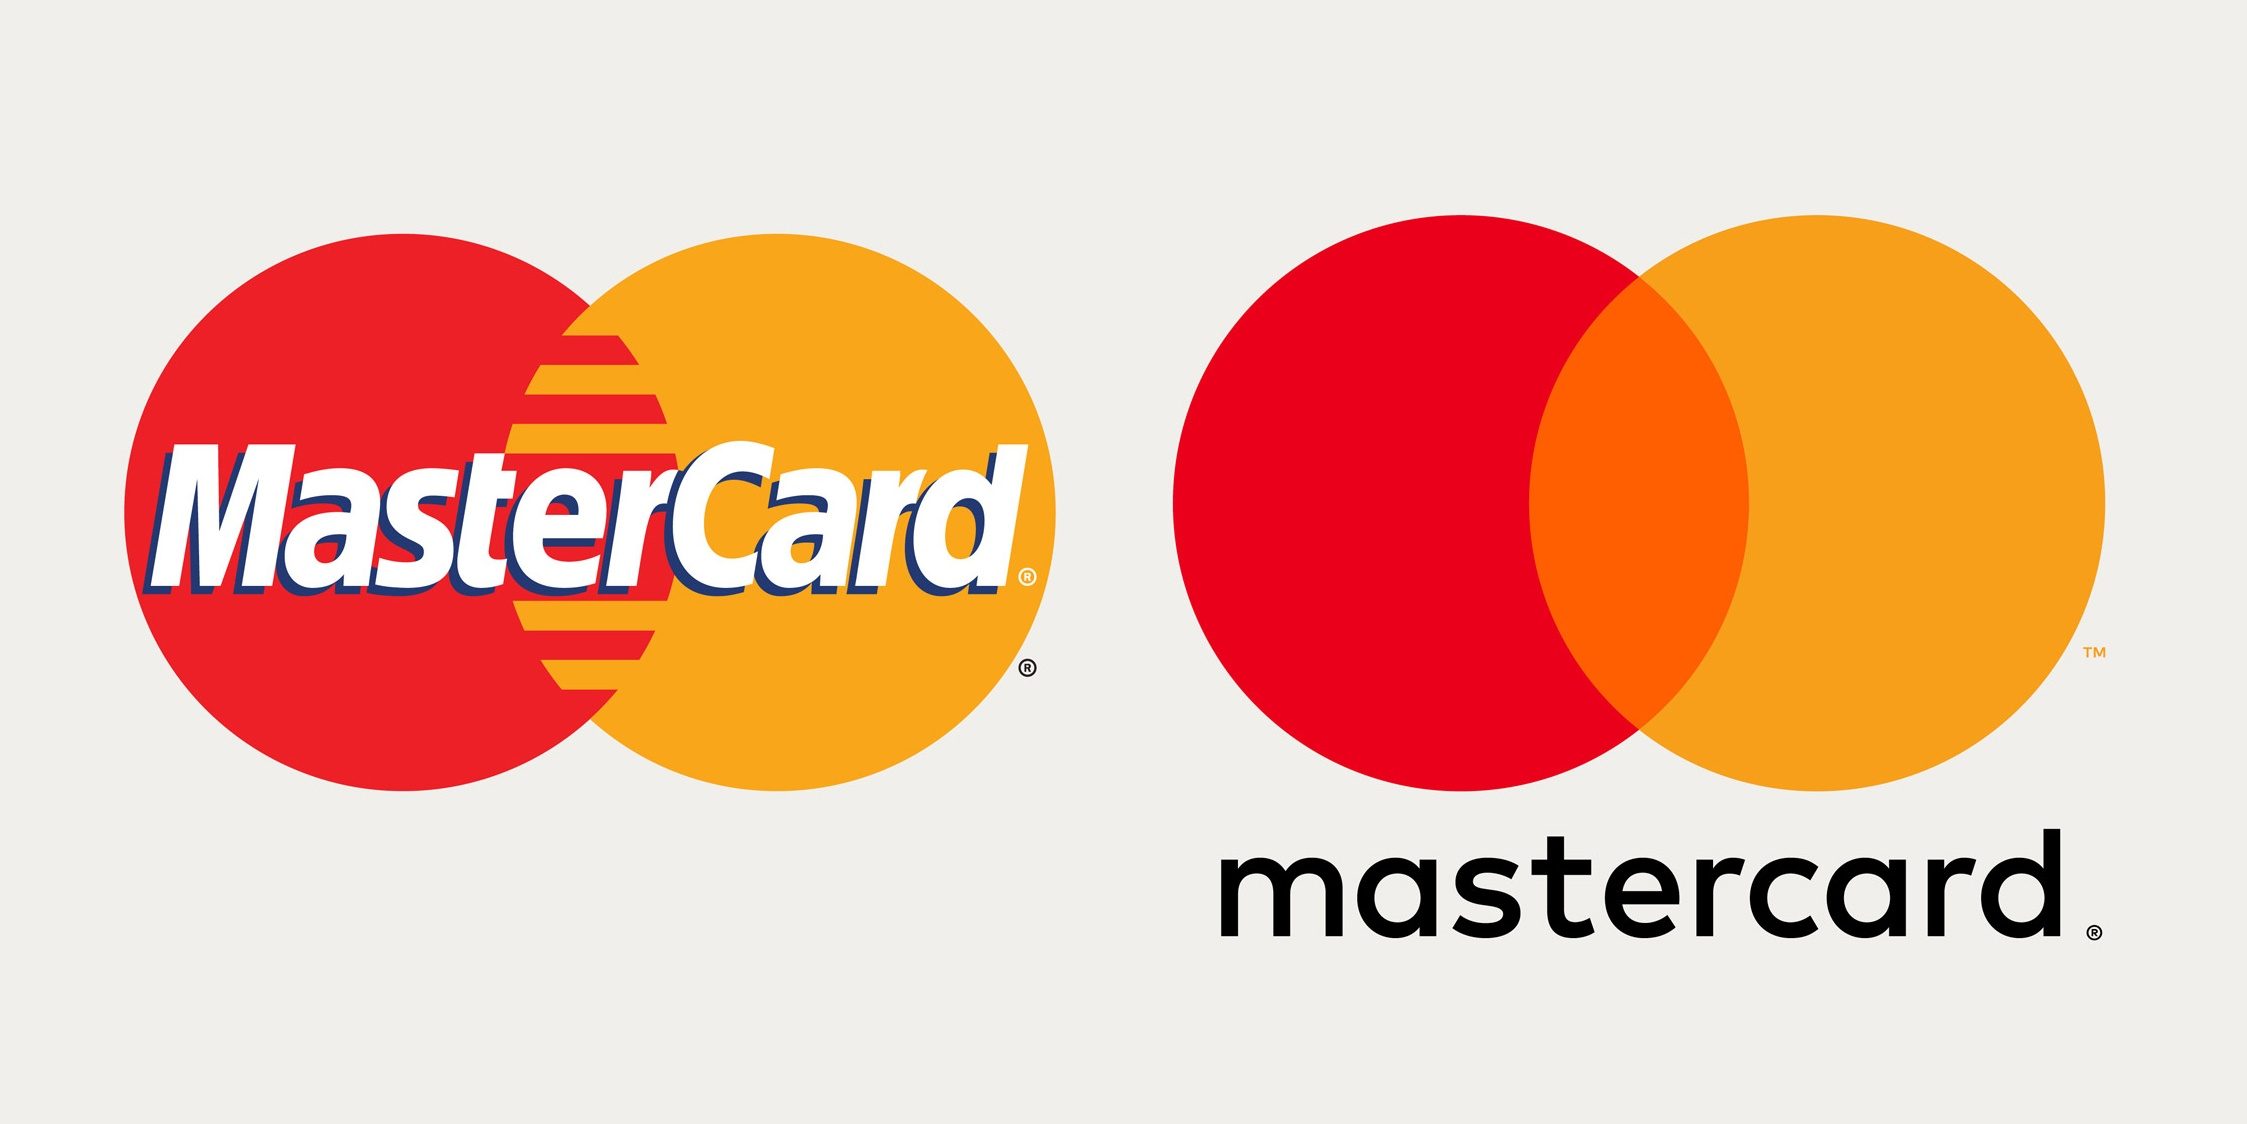 4 Branding Lessons from the MasterCard Logo Redesign